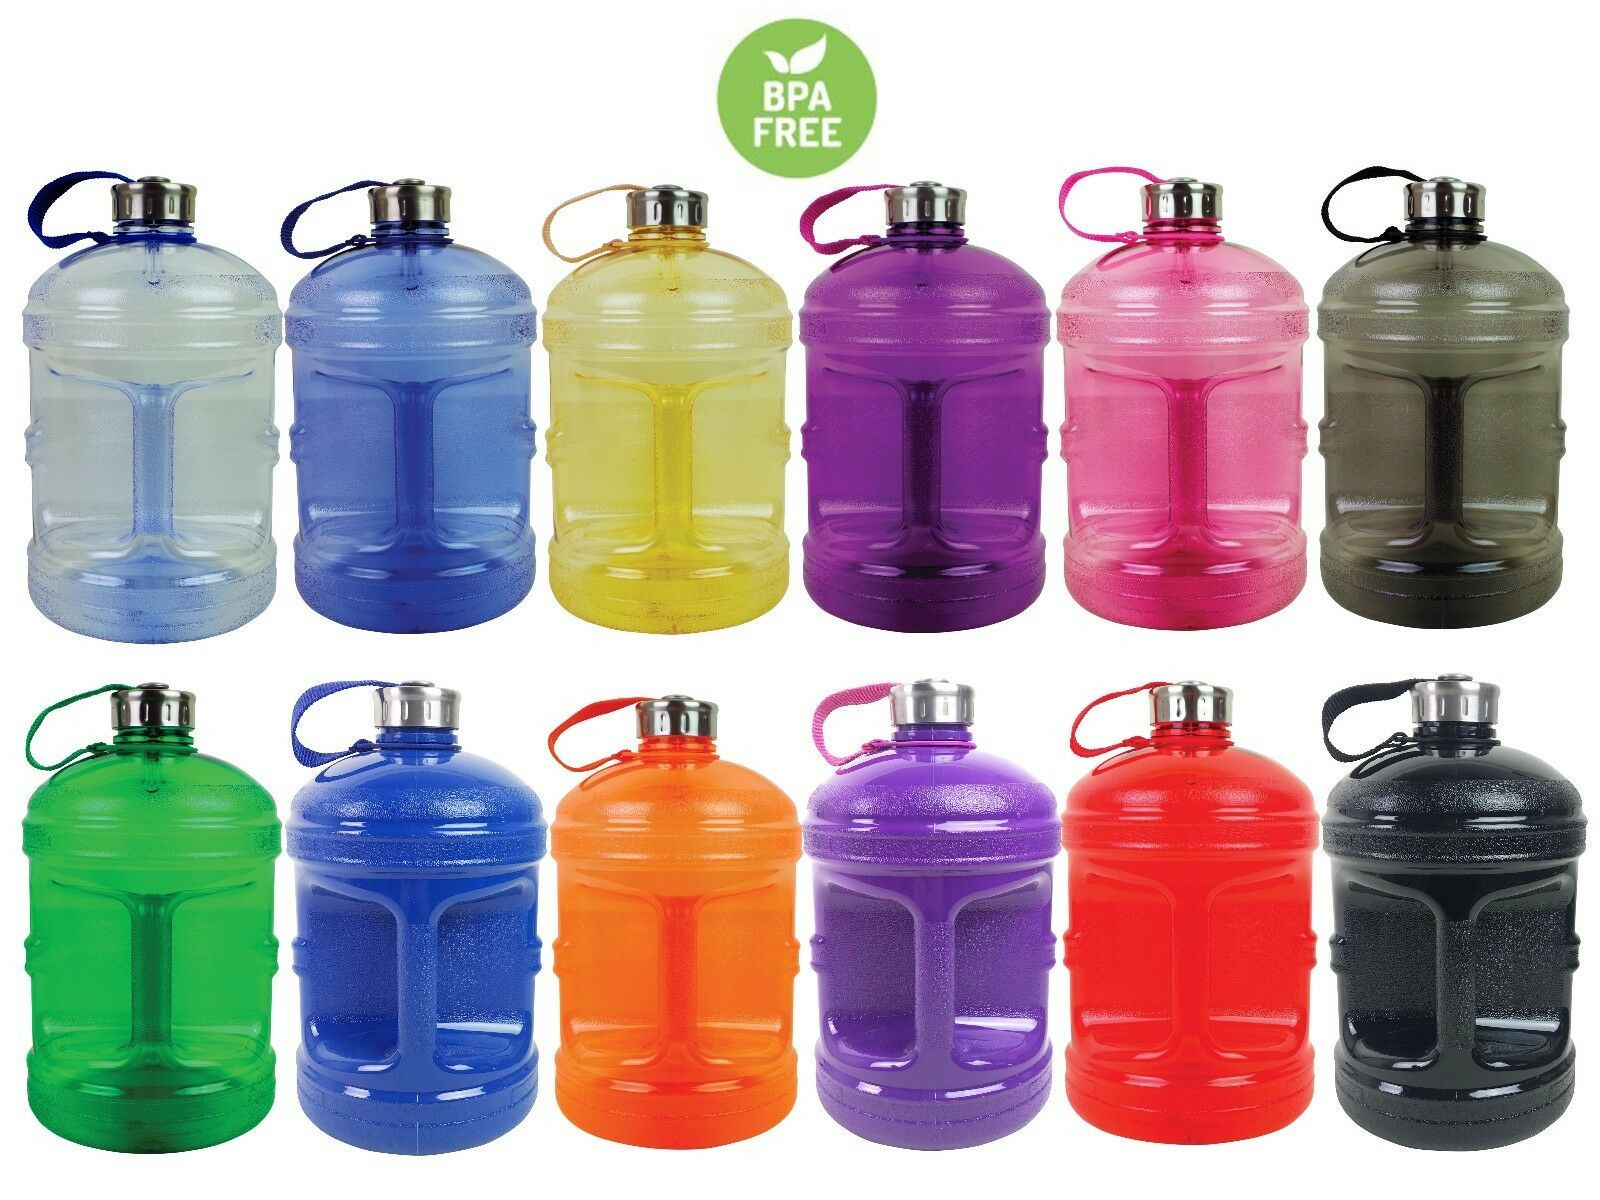 Bpa Free 1 Gallon Water Bottle Steel Cap Drinking Canteen Jug Container 128 Oz Bottle Ide Gallon Water Bottle Water Bottle Containers 1 Gallon Water Bottle